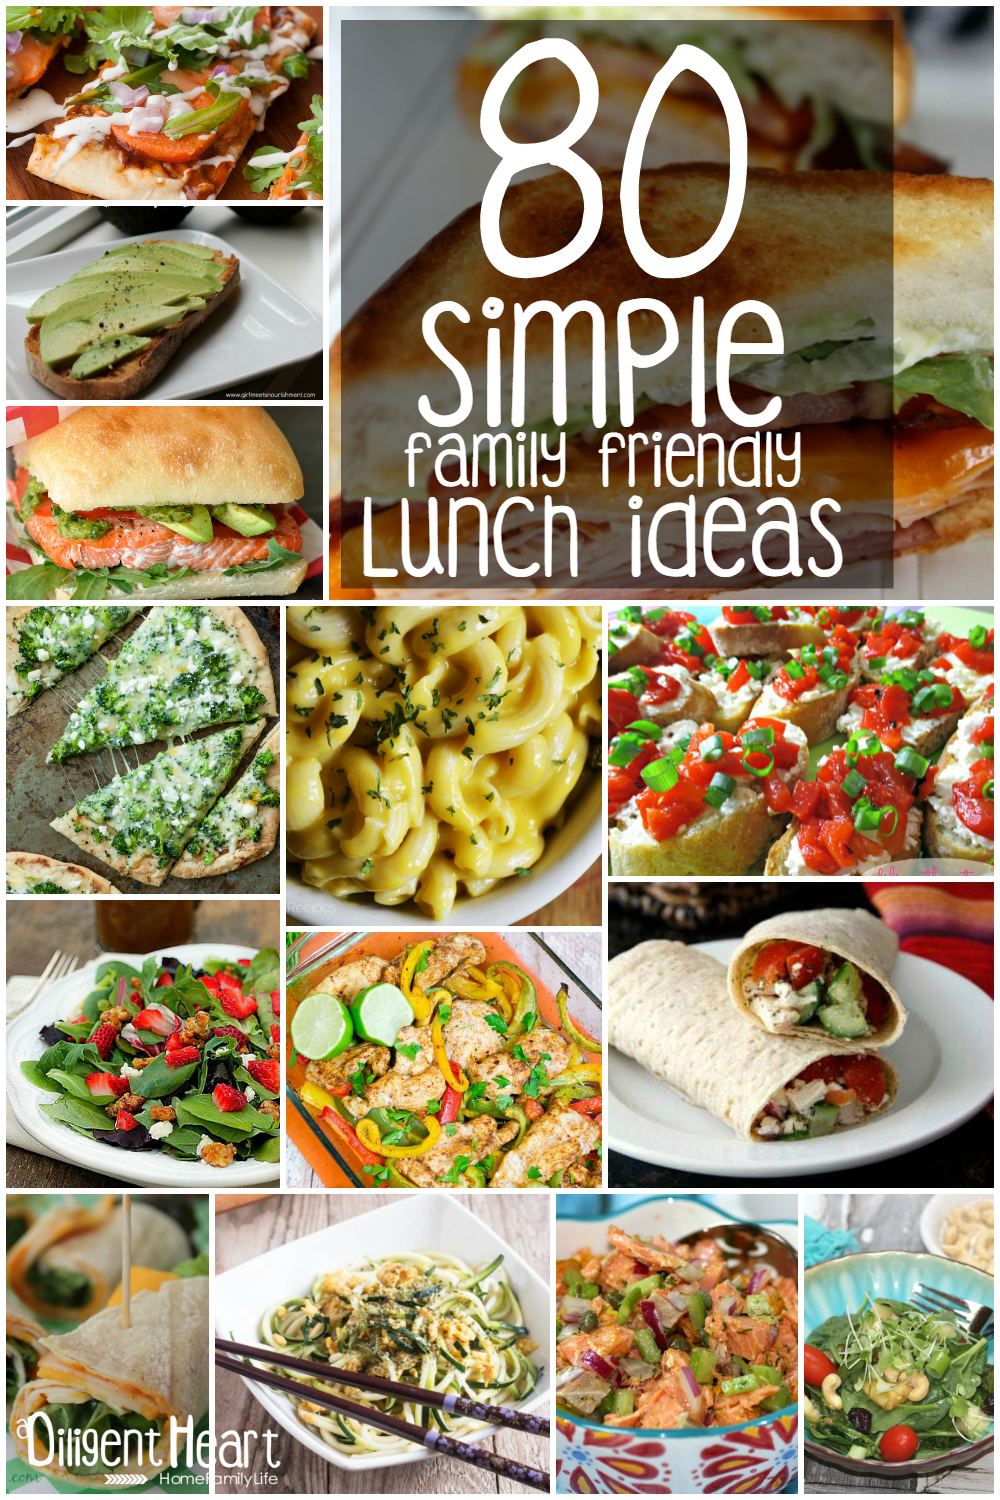 Simple Family Friendly Lunch Ideas Lunches